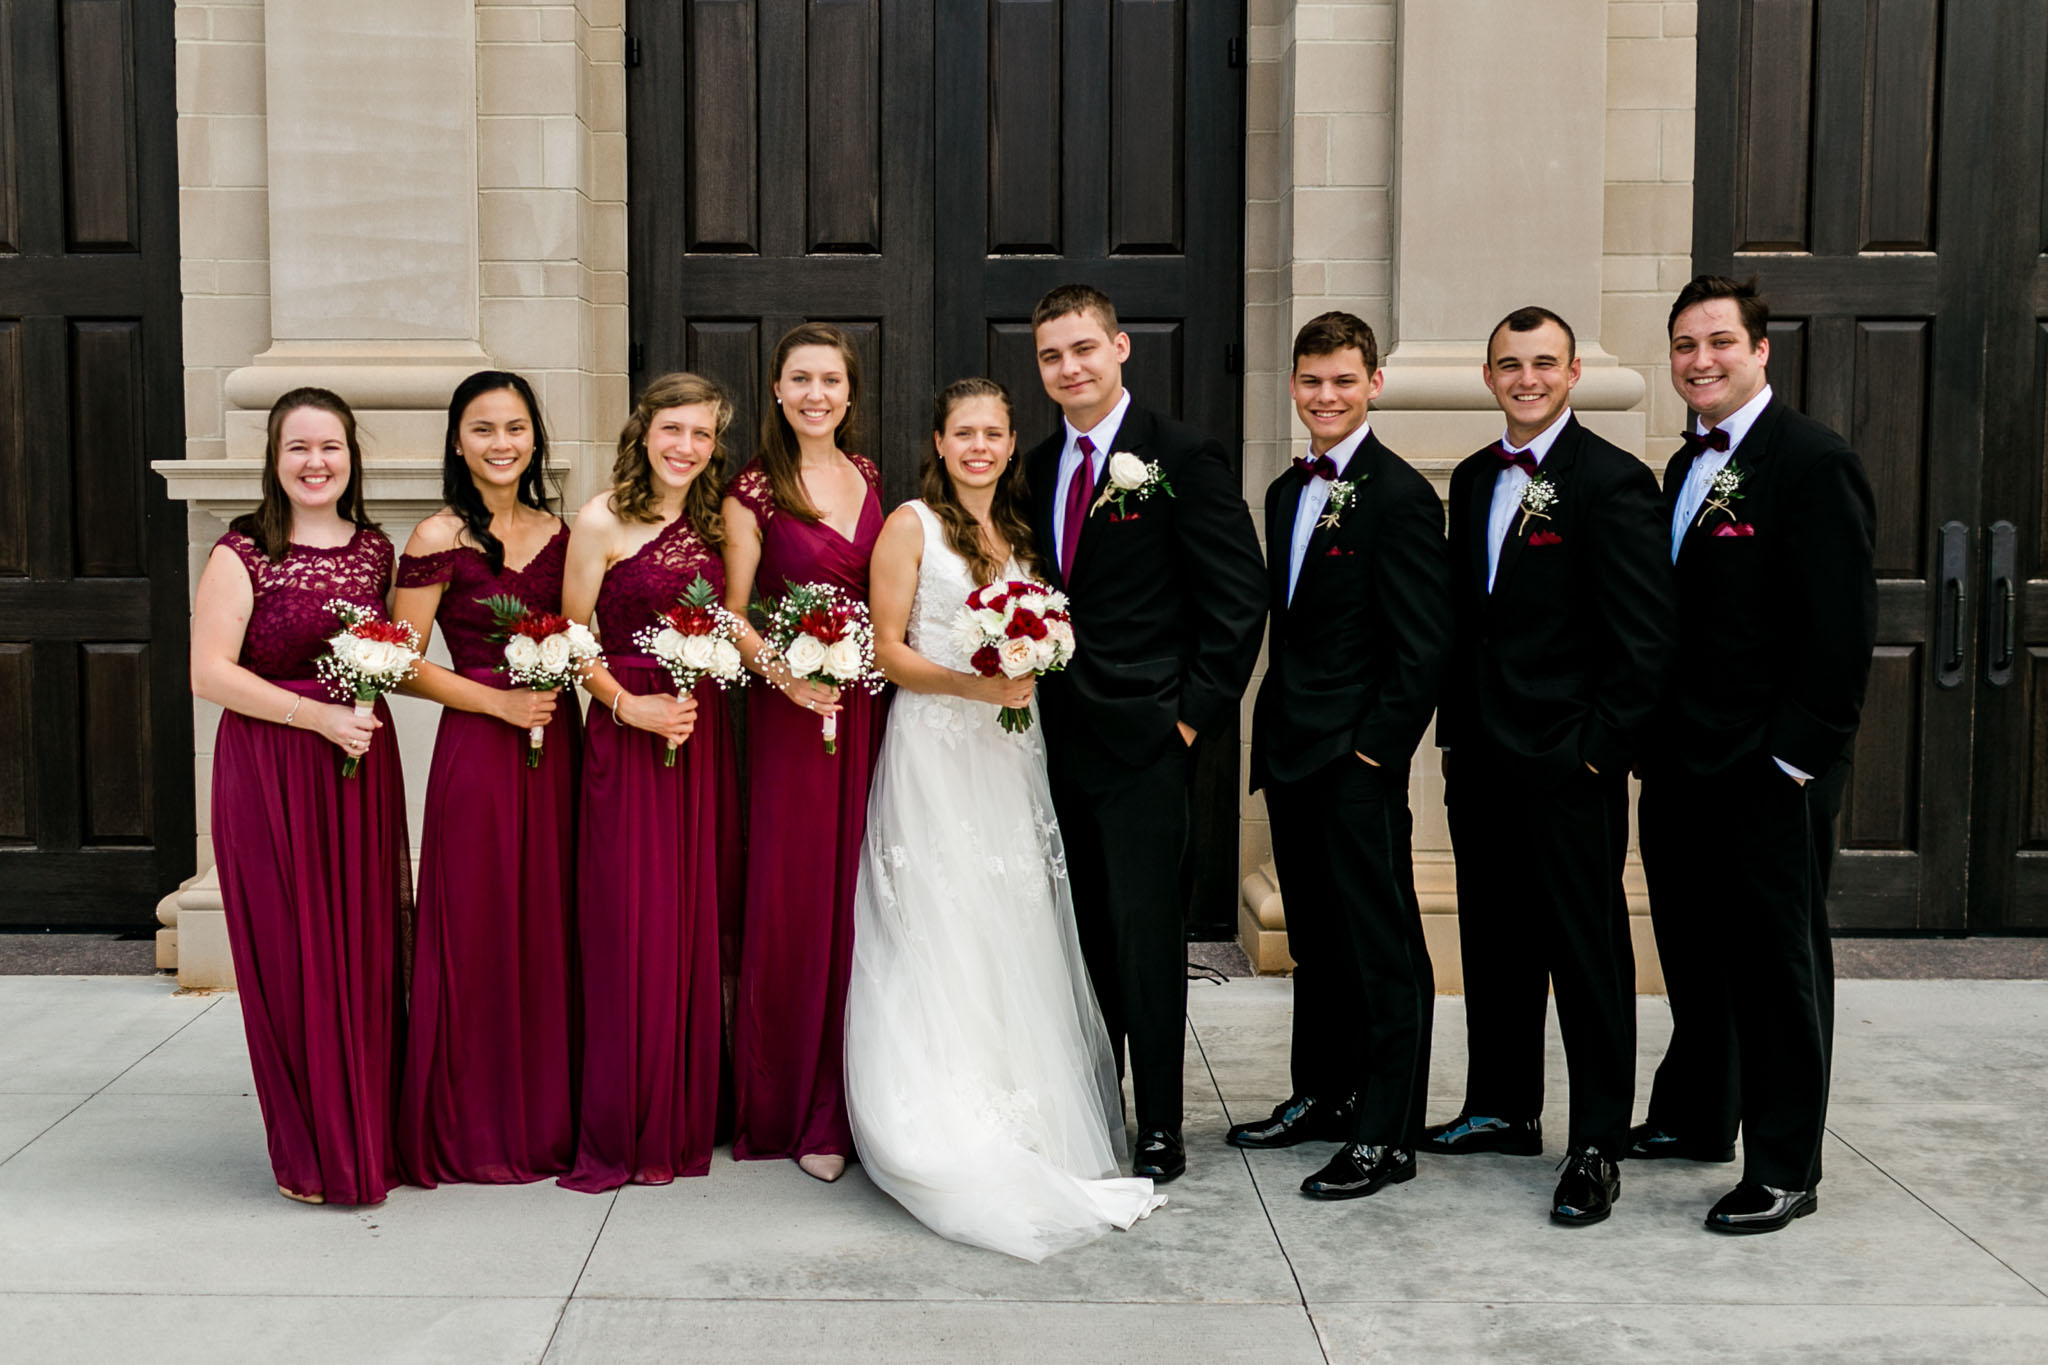 Wedding party photo wine red color scheme | Raleigh Wedding Photographer | By G. Lin Photography